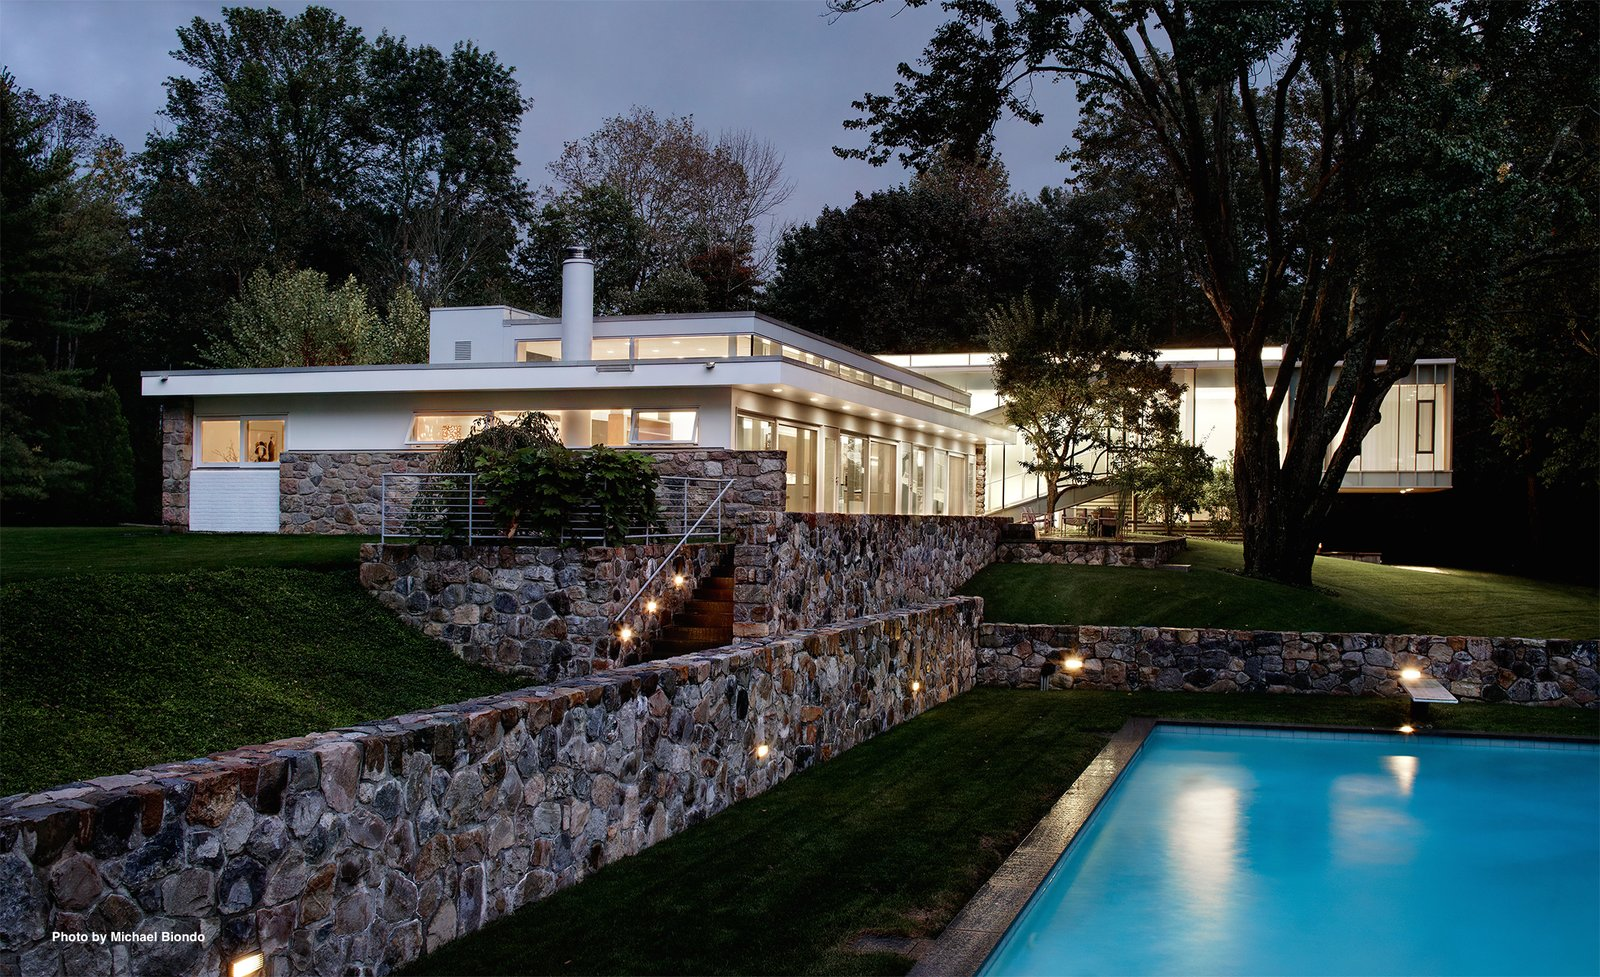 The Breuer property sits on three acres and includes a heated pool, pool house that was originally designed in 1981, sunning deck, and a Mori-designed wine cellar. The terrace features a waterfall and fern garden.